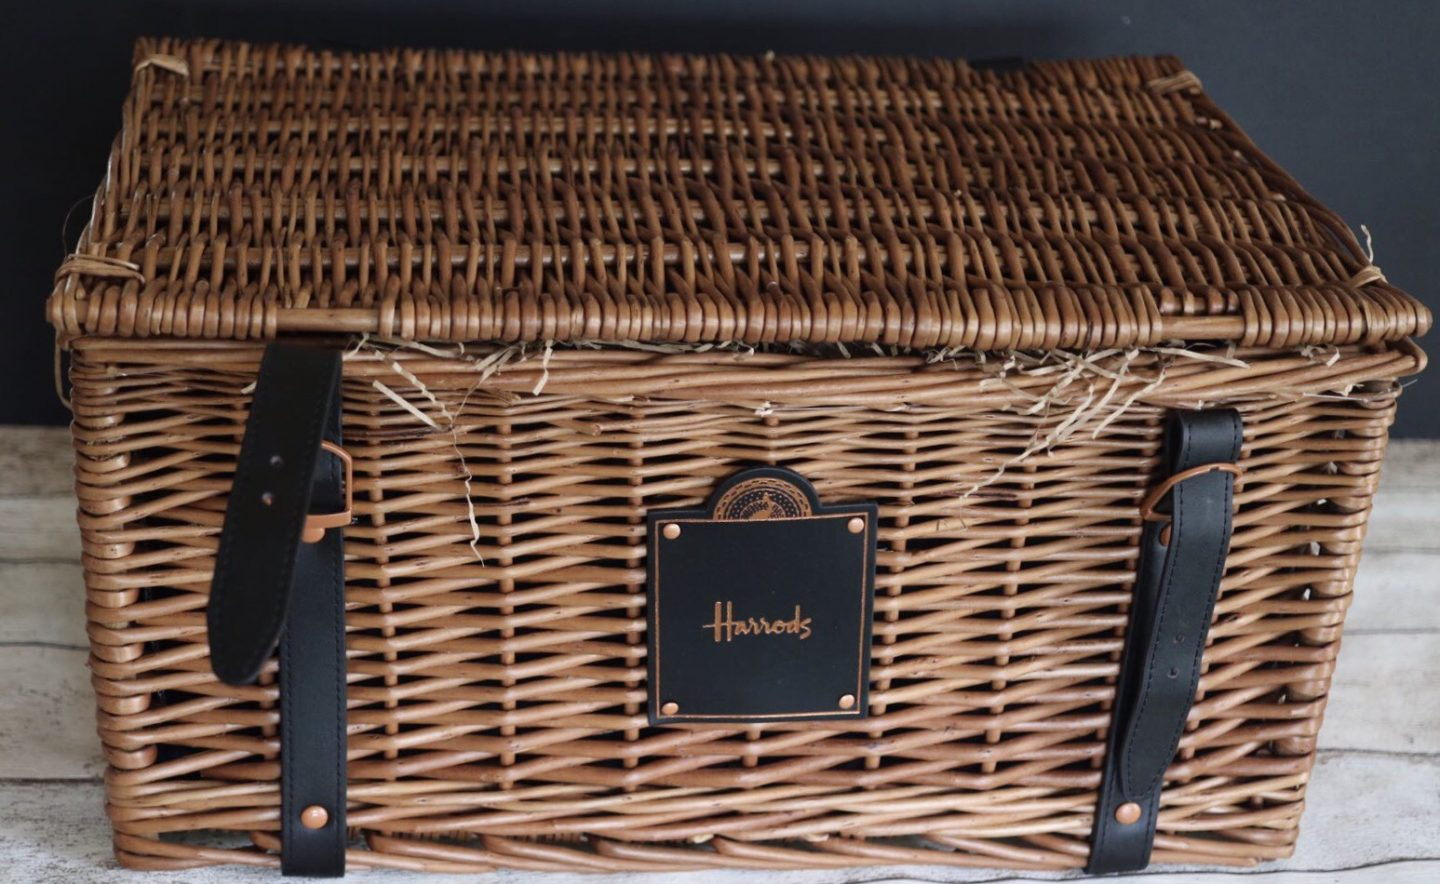 A Harrods Luxury Christmas Hamper